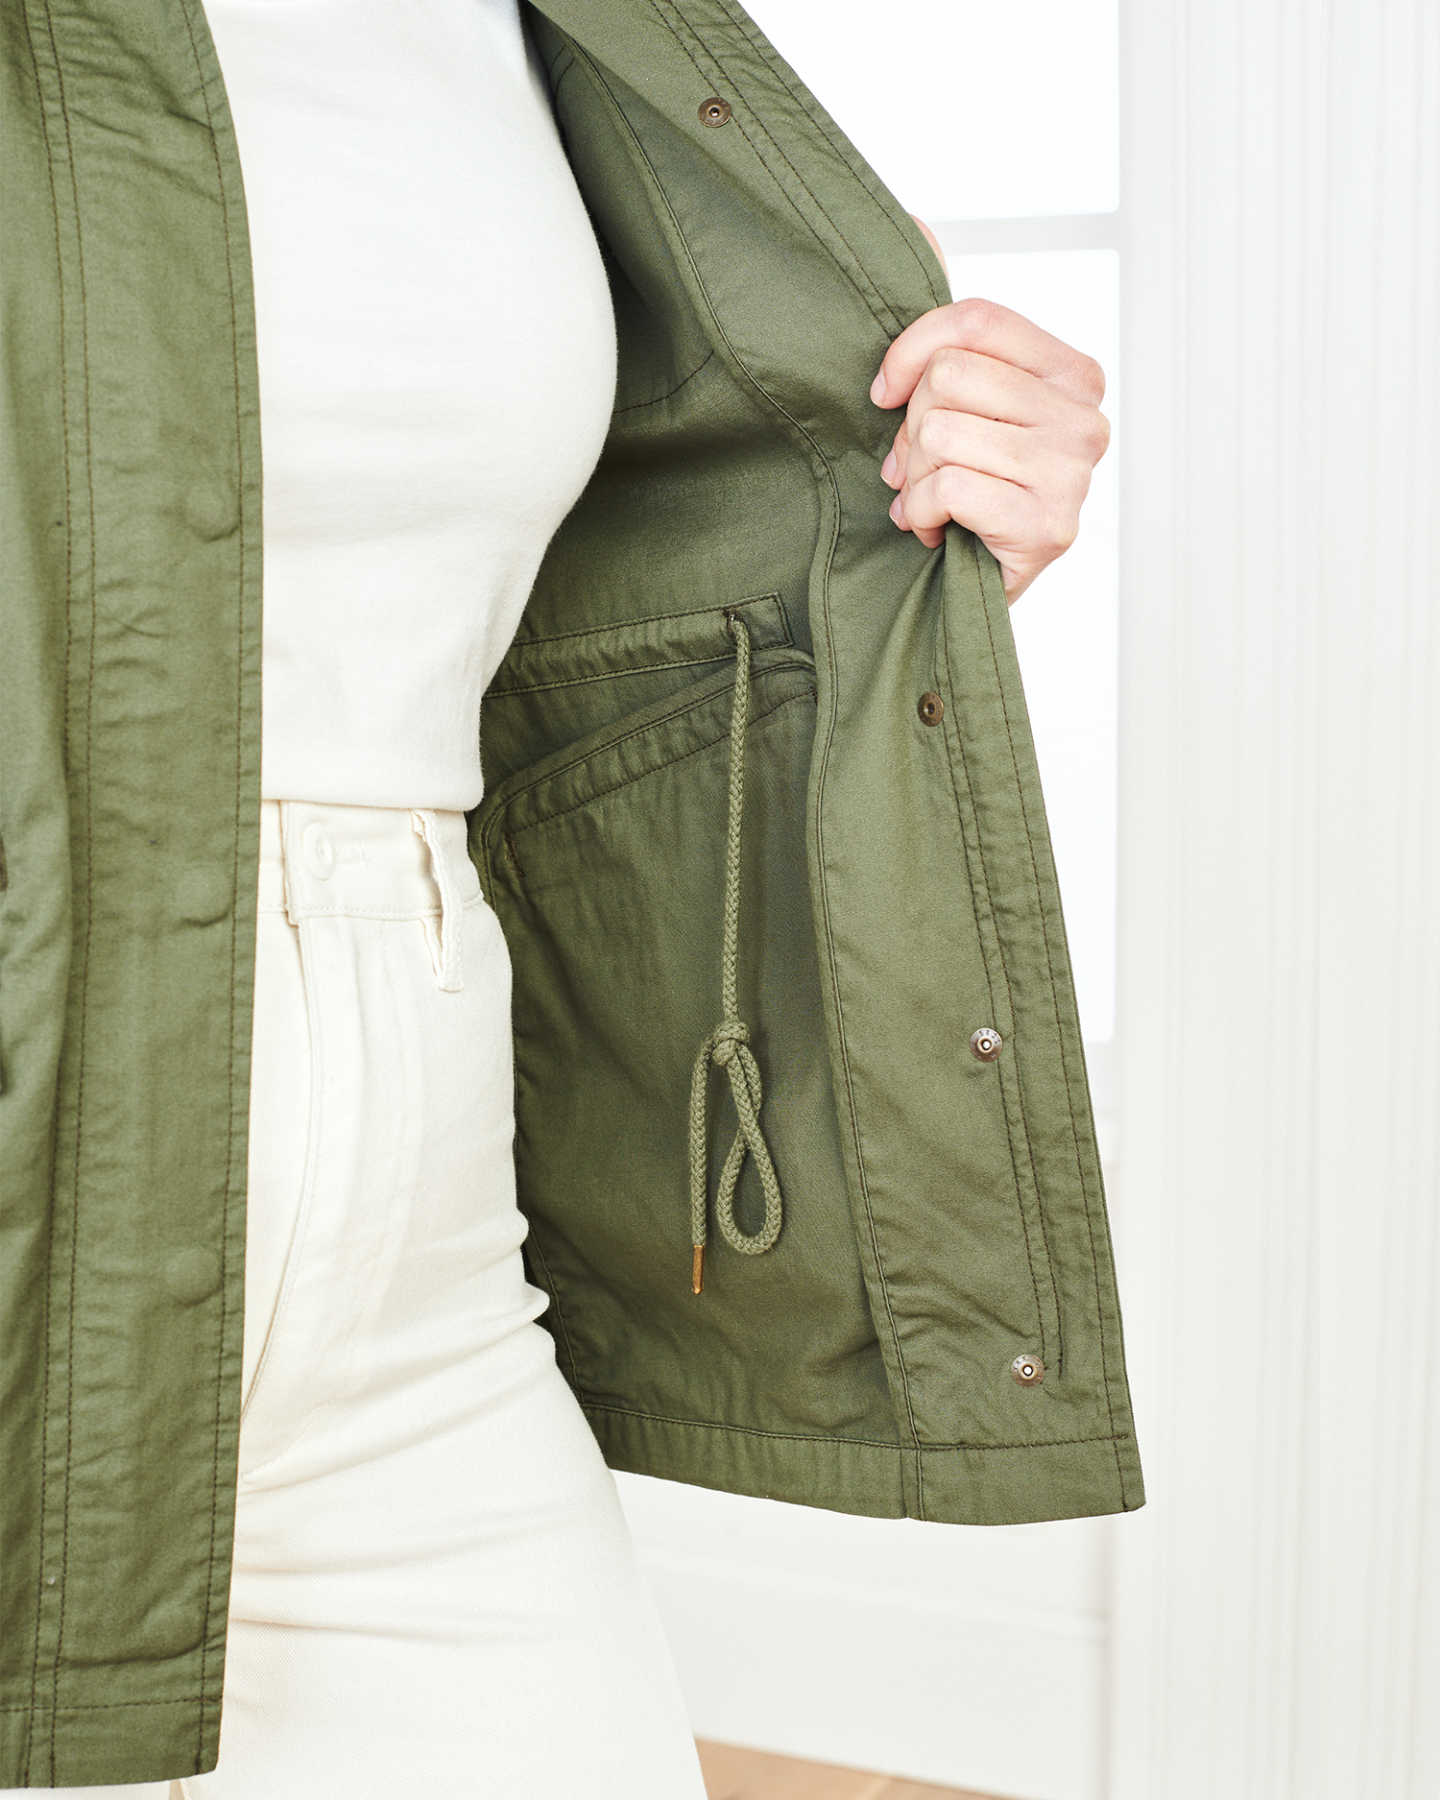 Cotton Twill Utility Jacket - Olive - 3